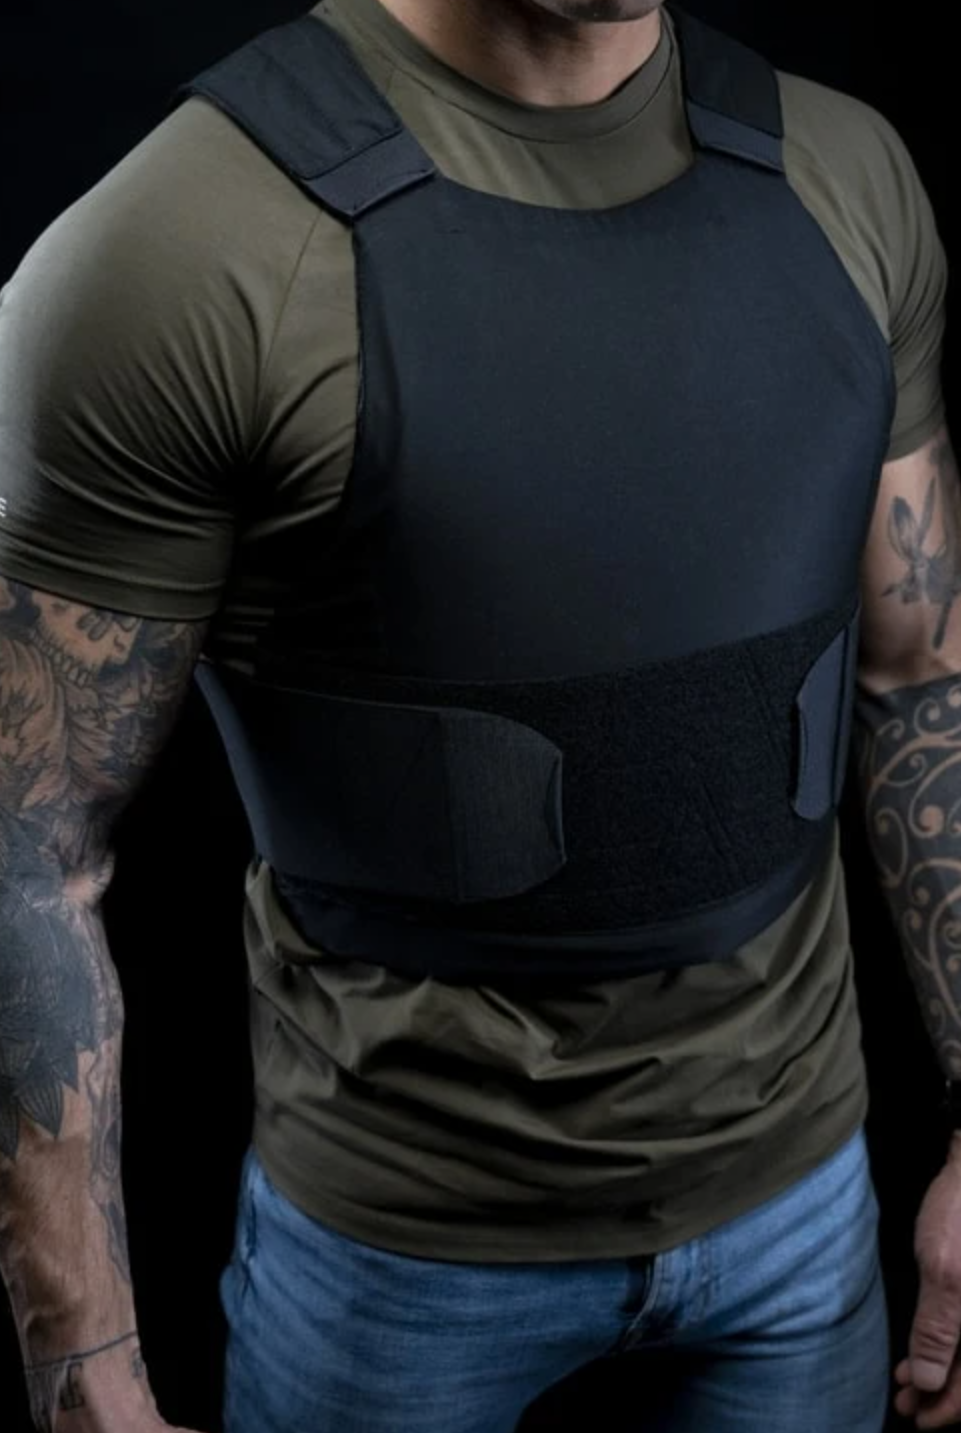 Tattooed man wearing PROTECTION GROUP DENMARK LEVEL IIIA ALPHA BULLET AND STAB PROOF VEST in black